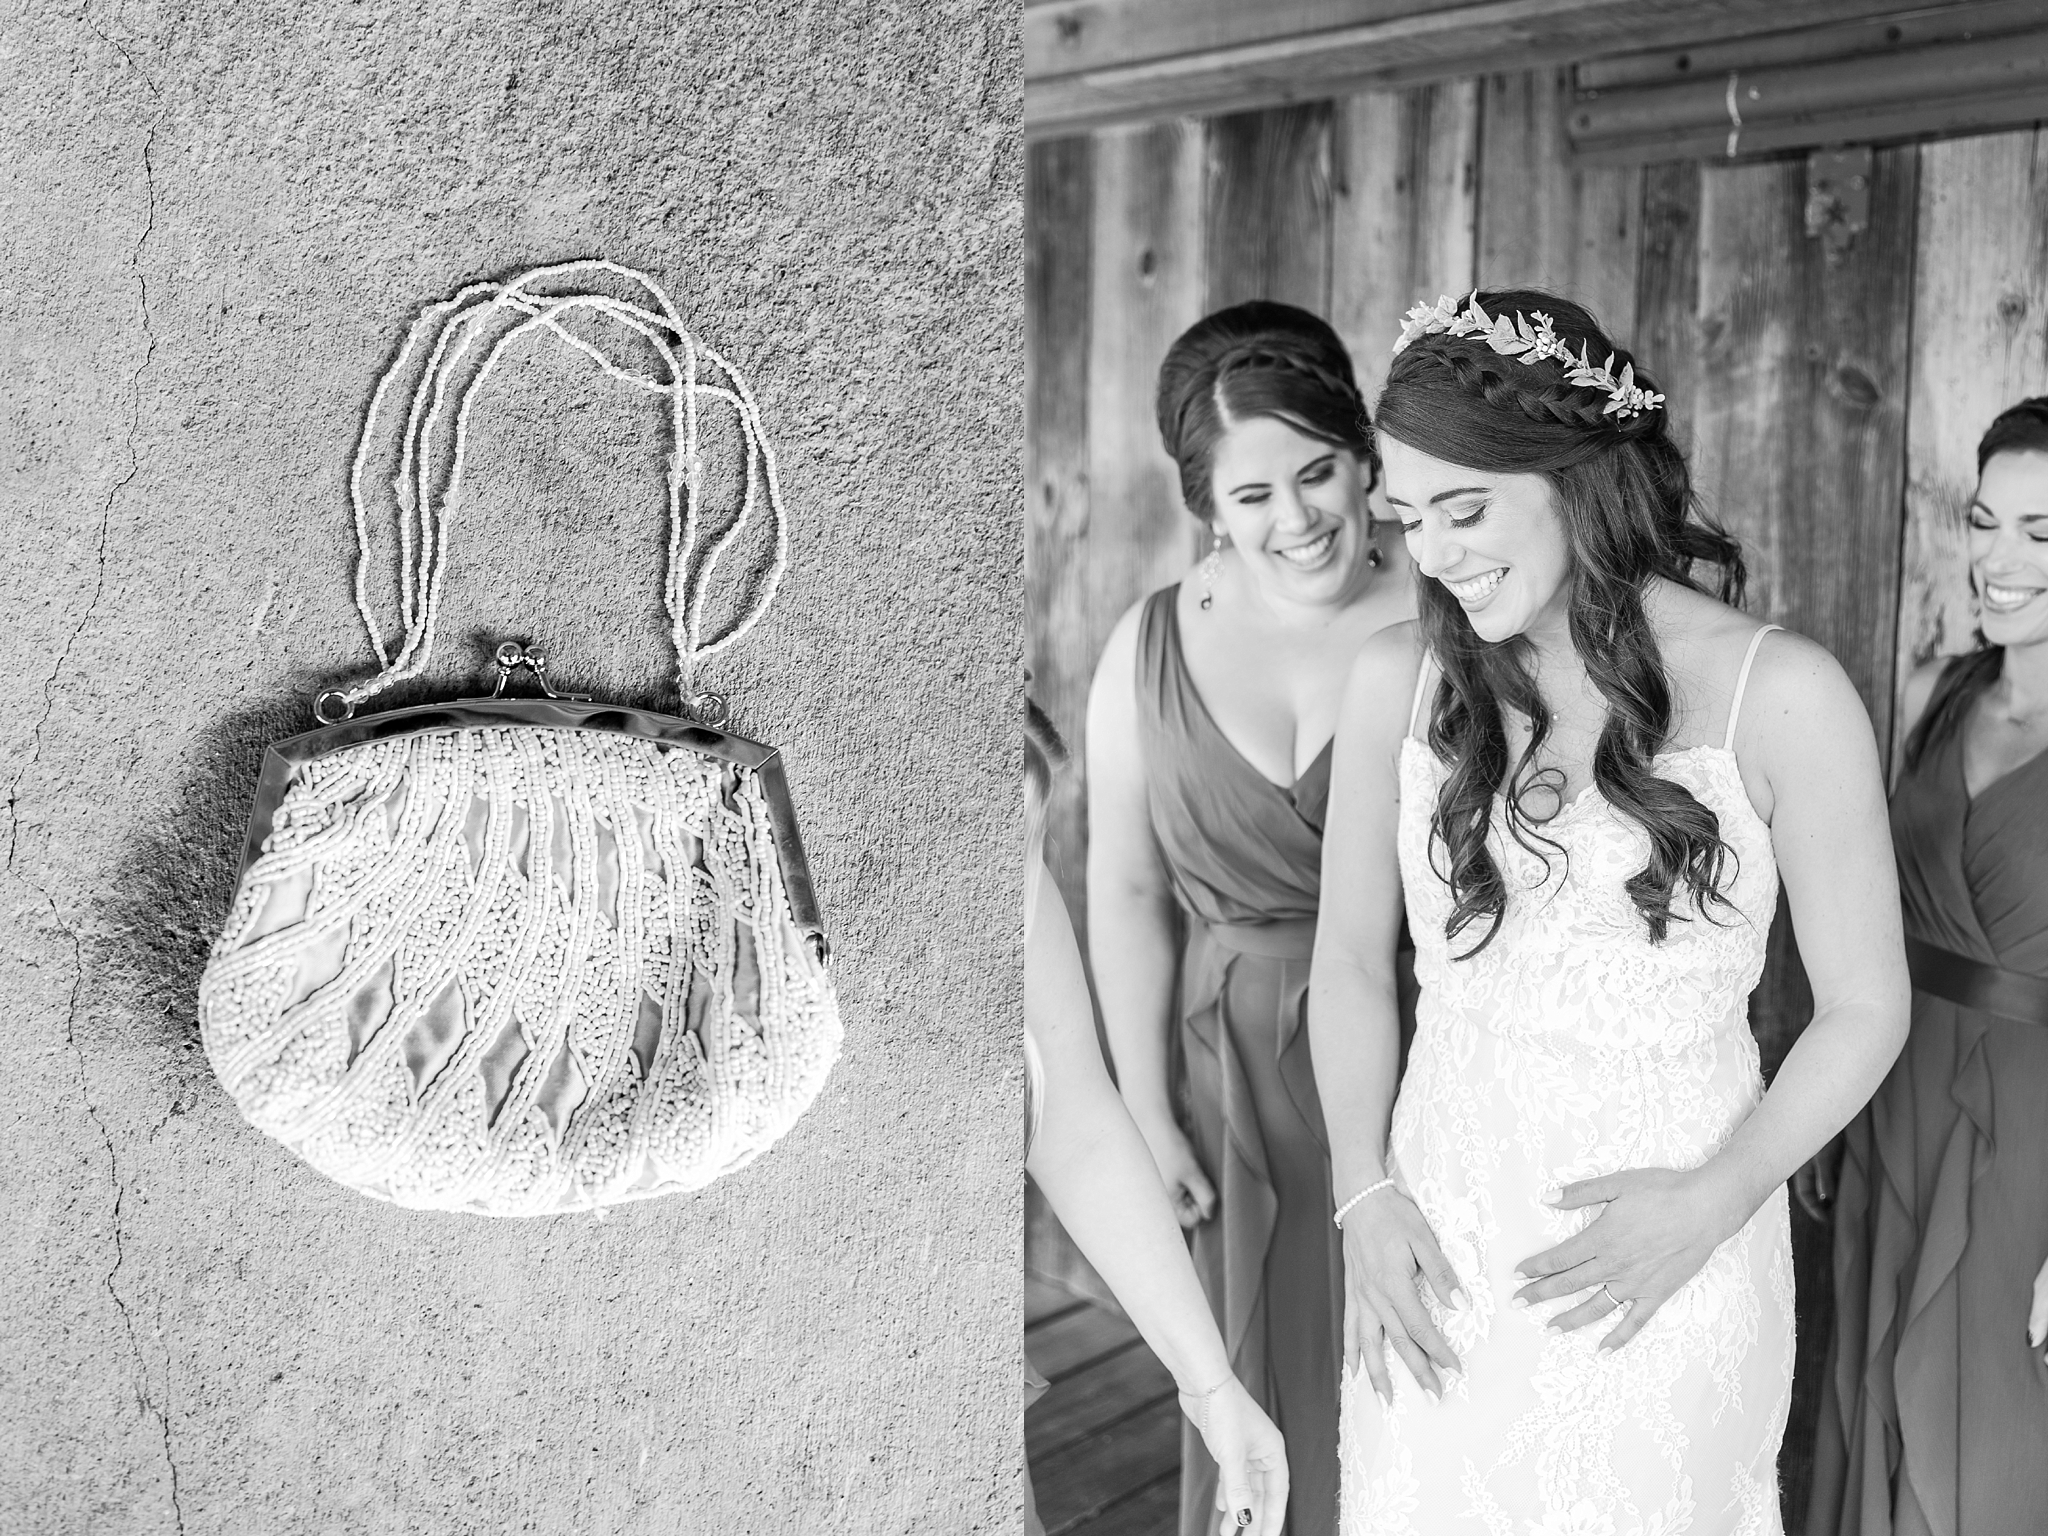 natural-rustic-wedding-photos-at-frutig-farms-the-valley-in-ann-arbor-michigan-by-courtney-carolyn-photography_0015.jpg